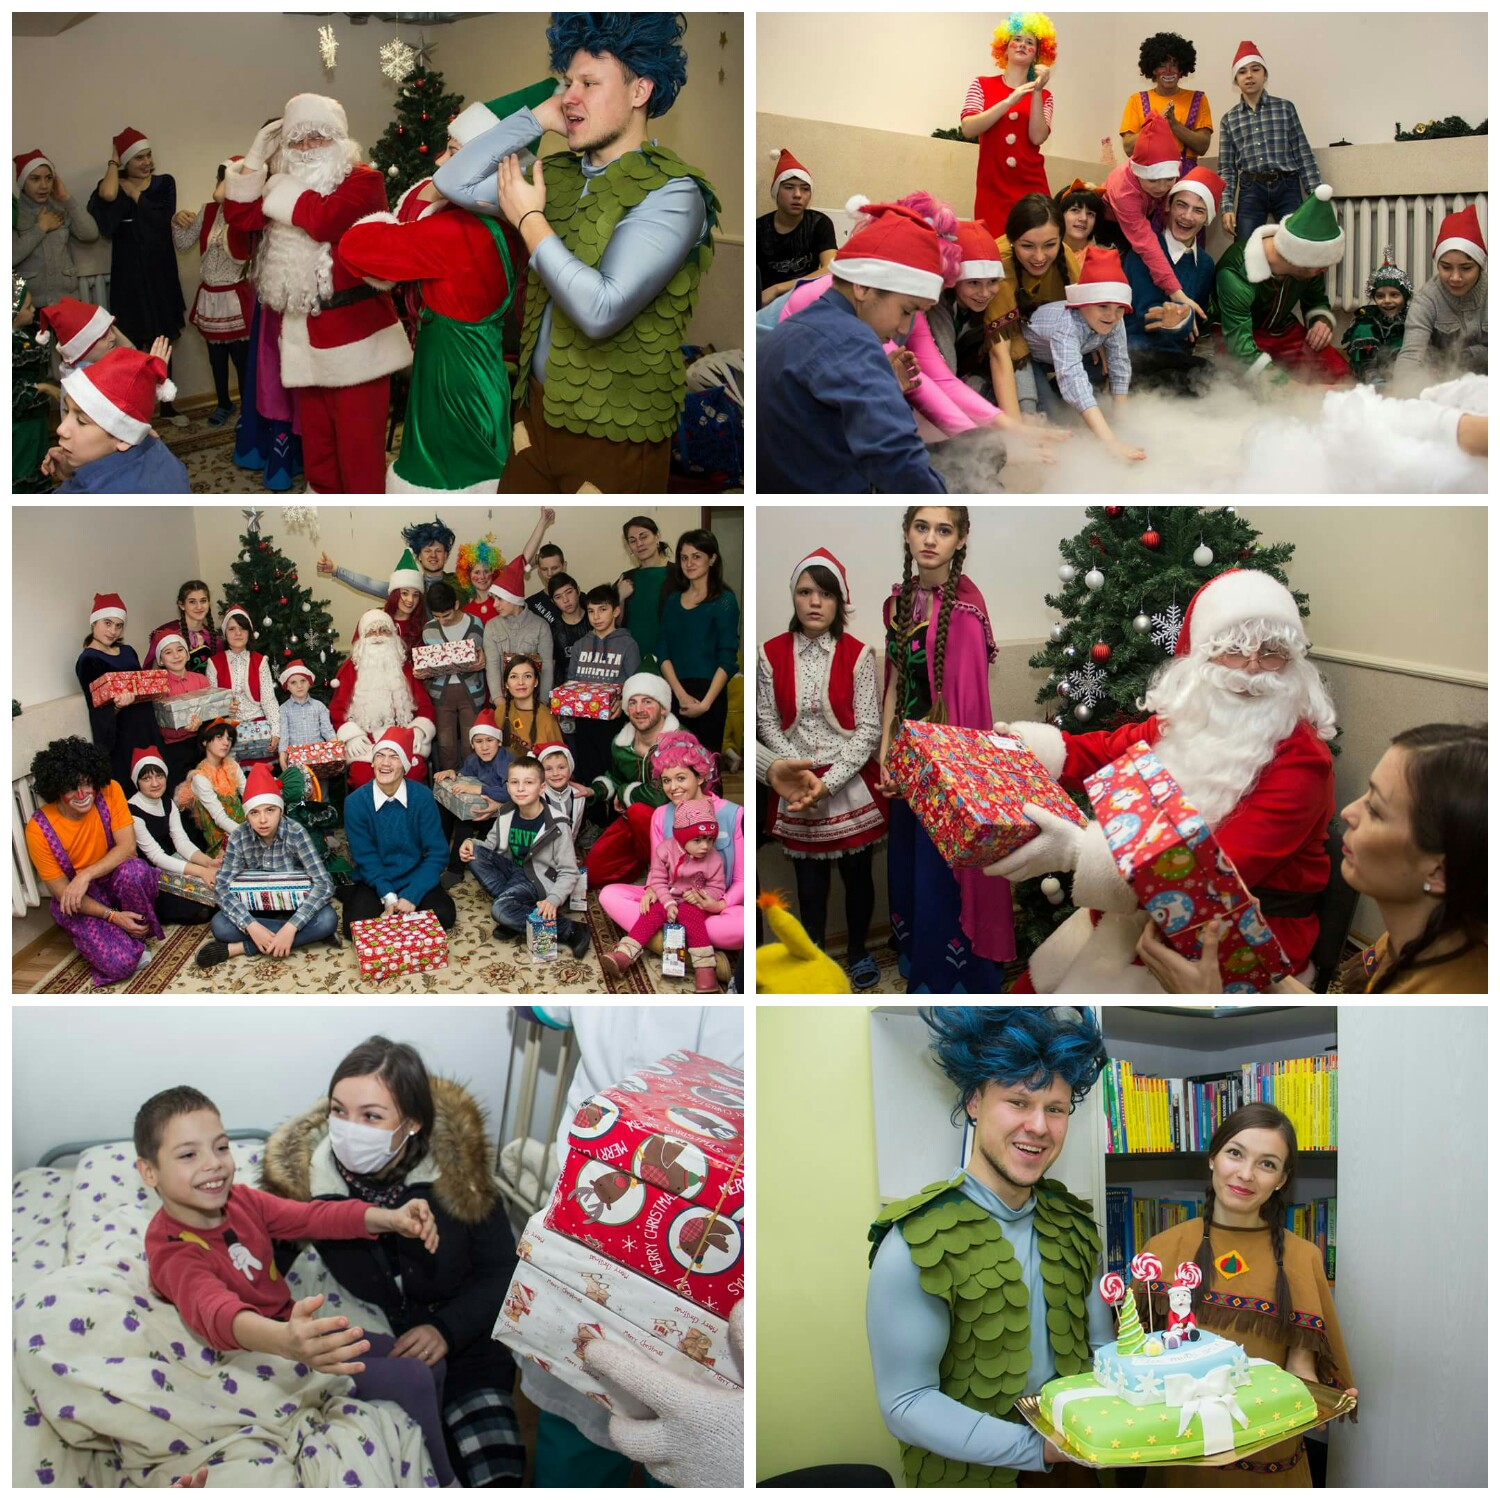 Bring Christmas to Moldova by 979f39a8b32c980c315033ec08150dfa627a8d34 fundraising photo 1